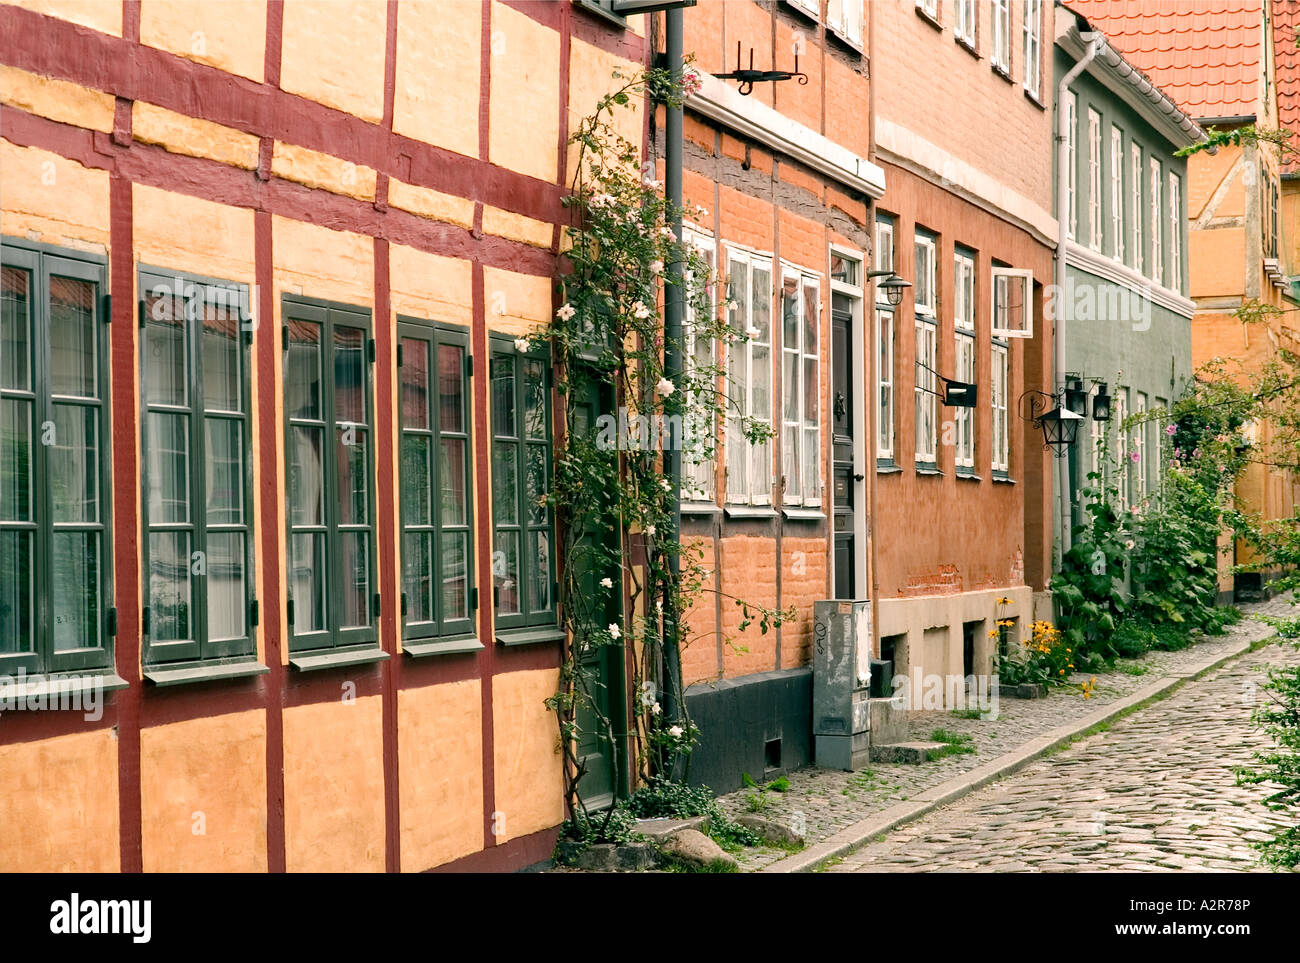 Street with old half timbered houses Helsingør Elsinore Zealand Denmark - Stock Image